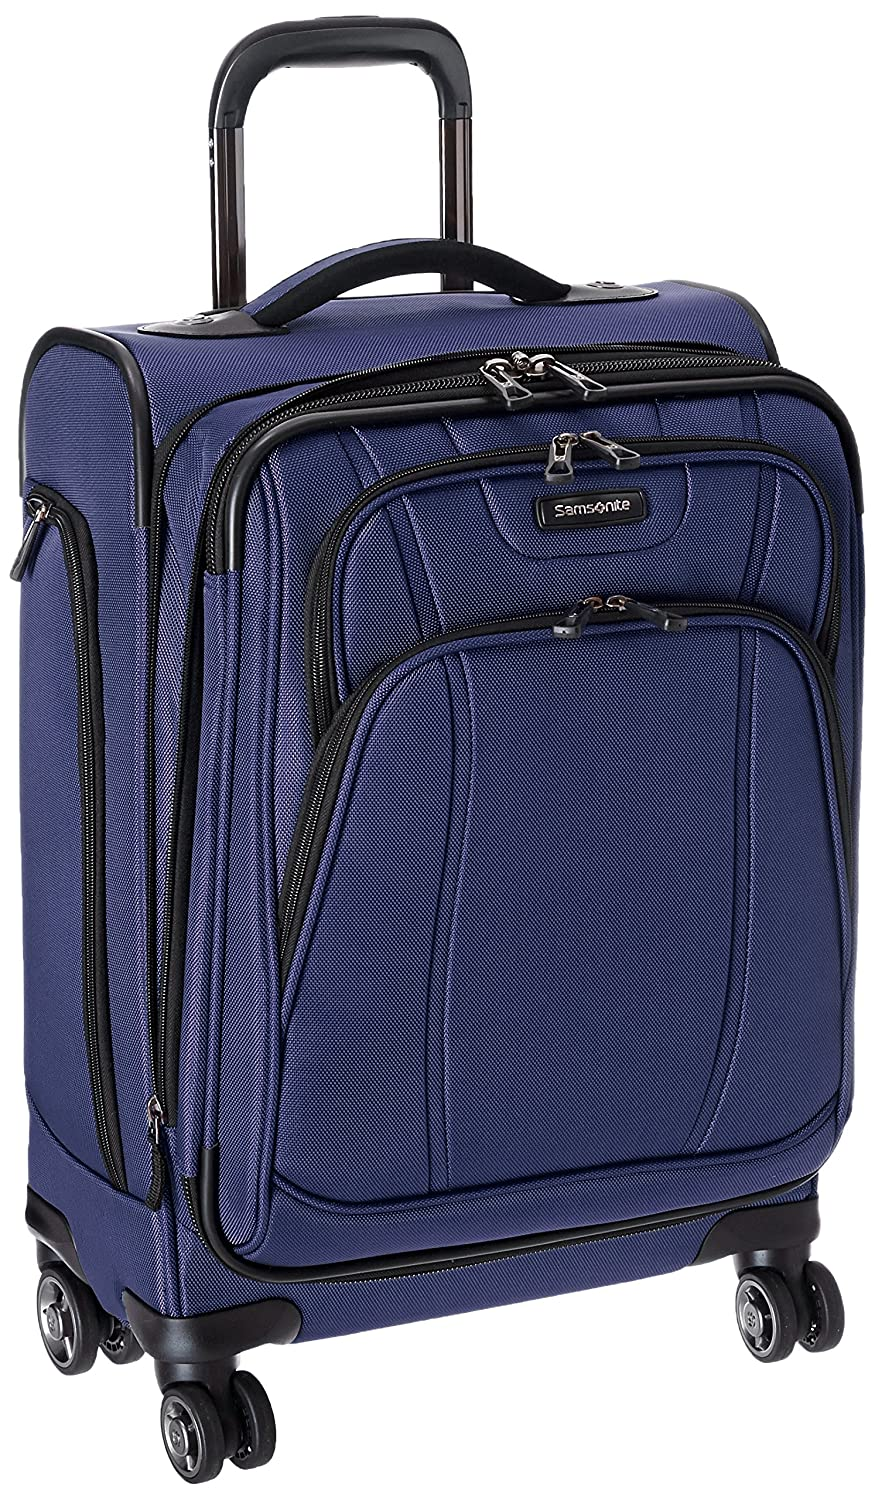 Samsonite - Maleta Adulto Unisex, Space Blue (Azul) - 60286-1820: Amazon.es: Equipaje